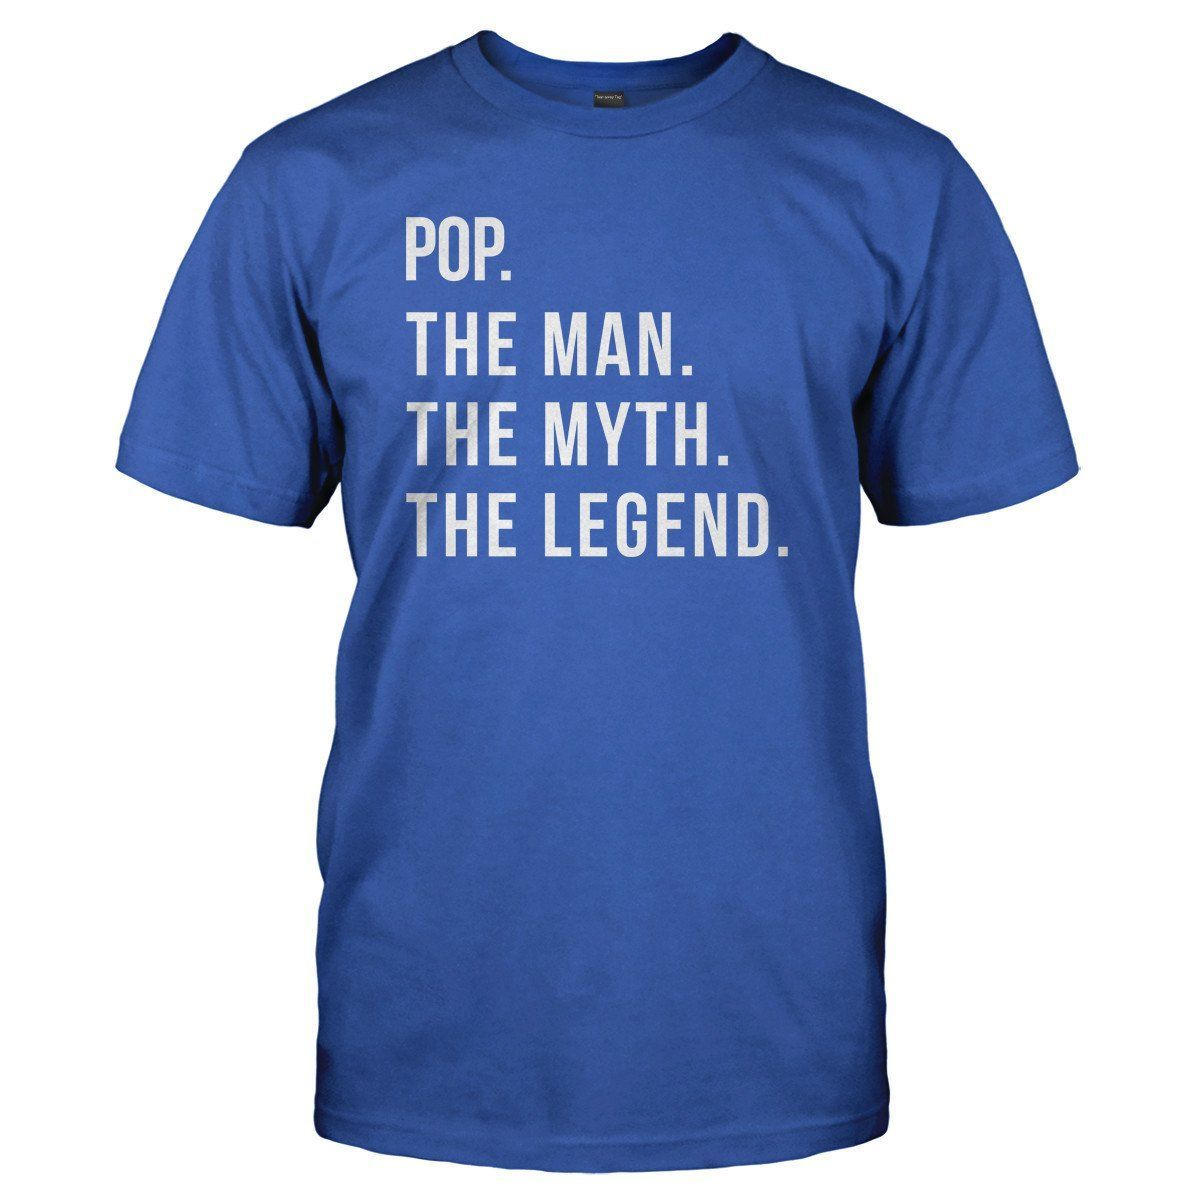 Pop. The Man. The Myth. The Legend.